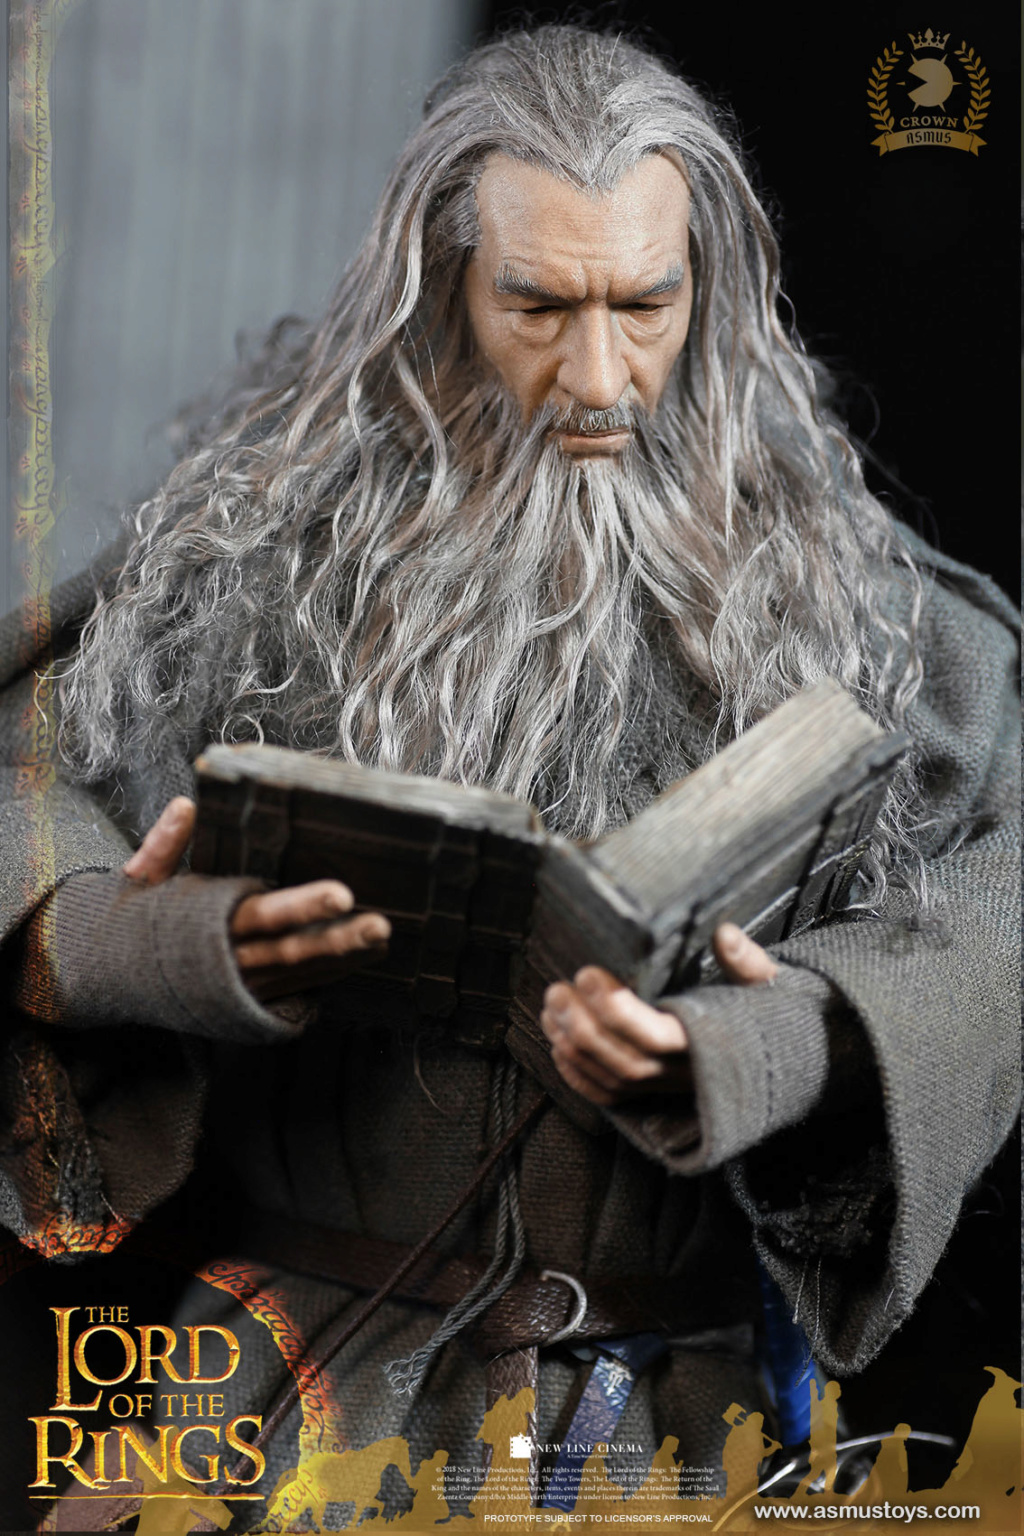 NEW PRODUCT: ASMUS TOYS THE CROWN SERIES : GANDALF THE GREY 1/6 figure 9190